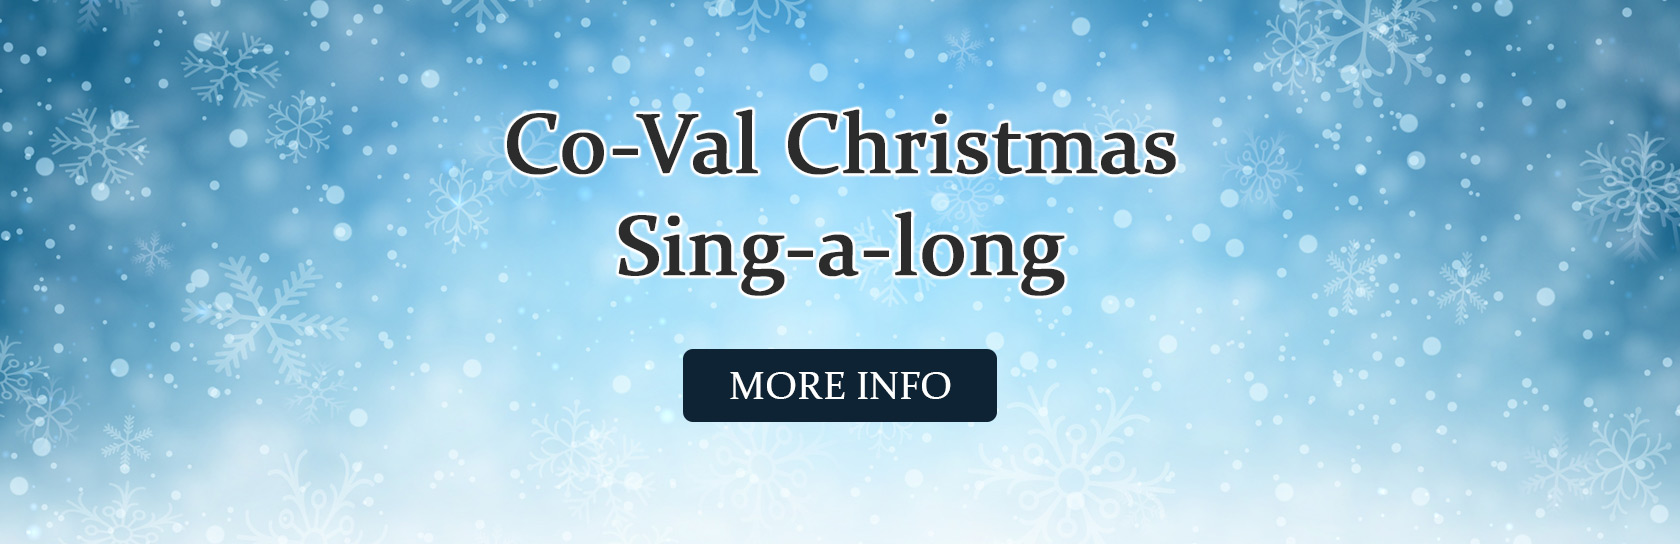 Christmas Sing a long CoVal